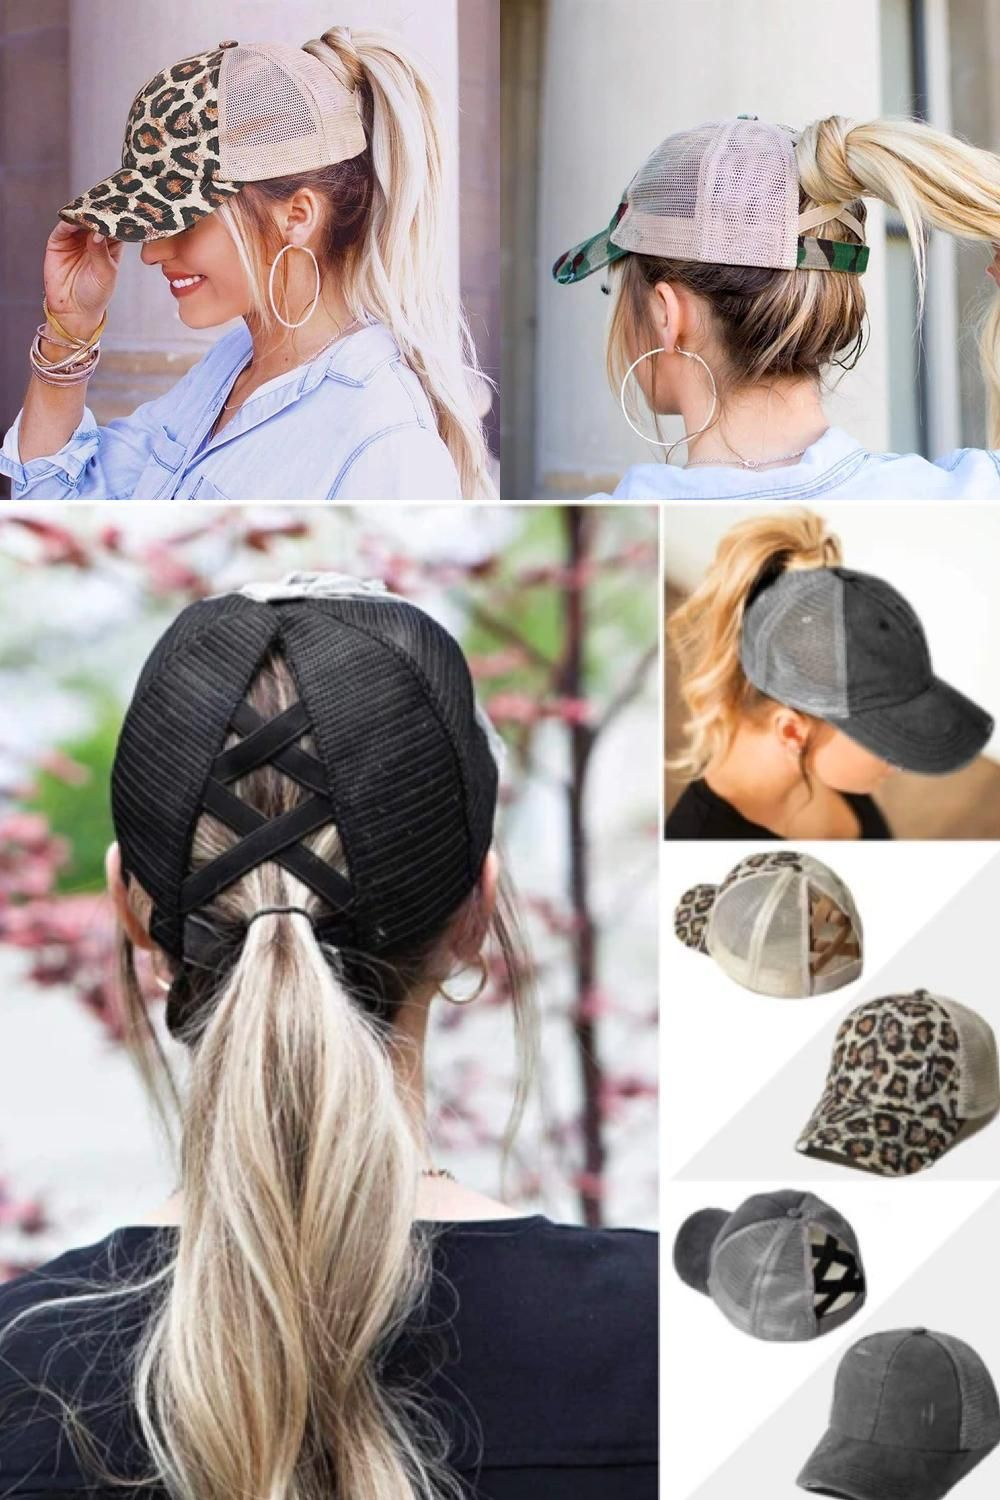 👉🏼 CrissCross caps: The trend of the year 2020! 😍 Specially designed for women!